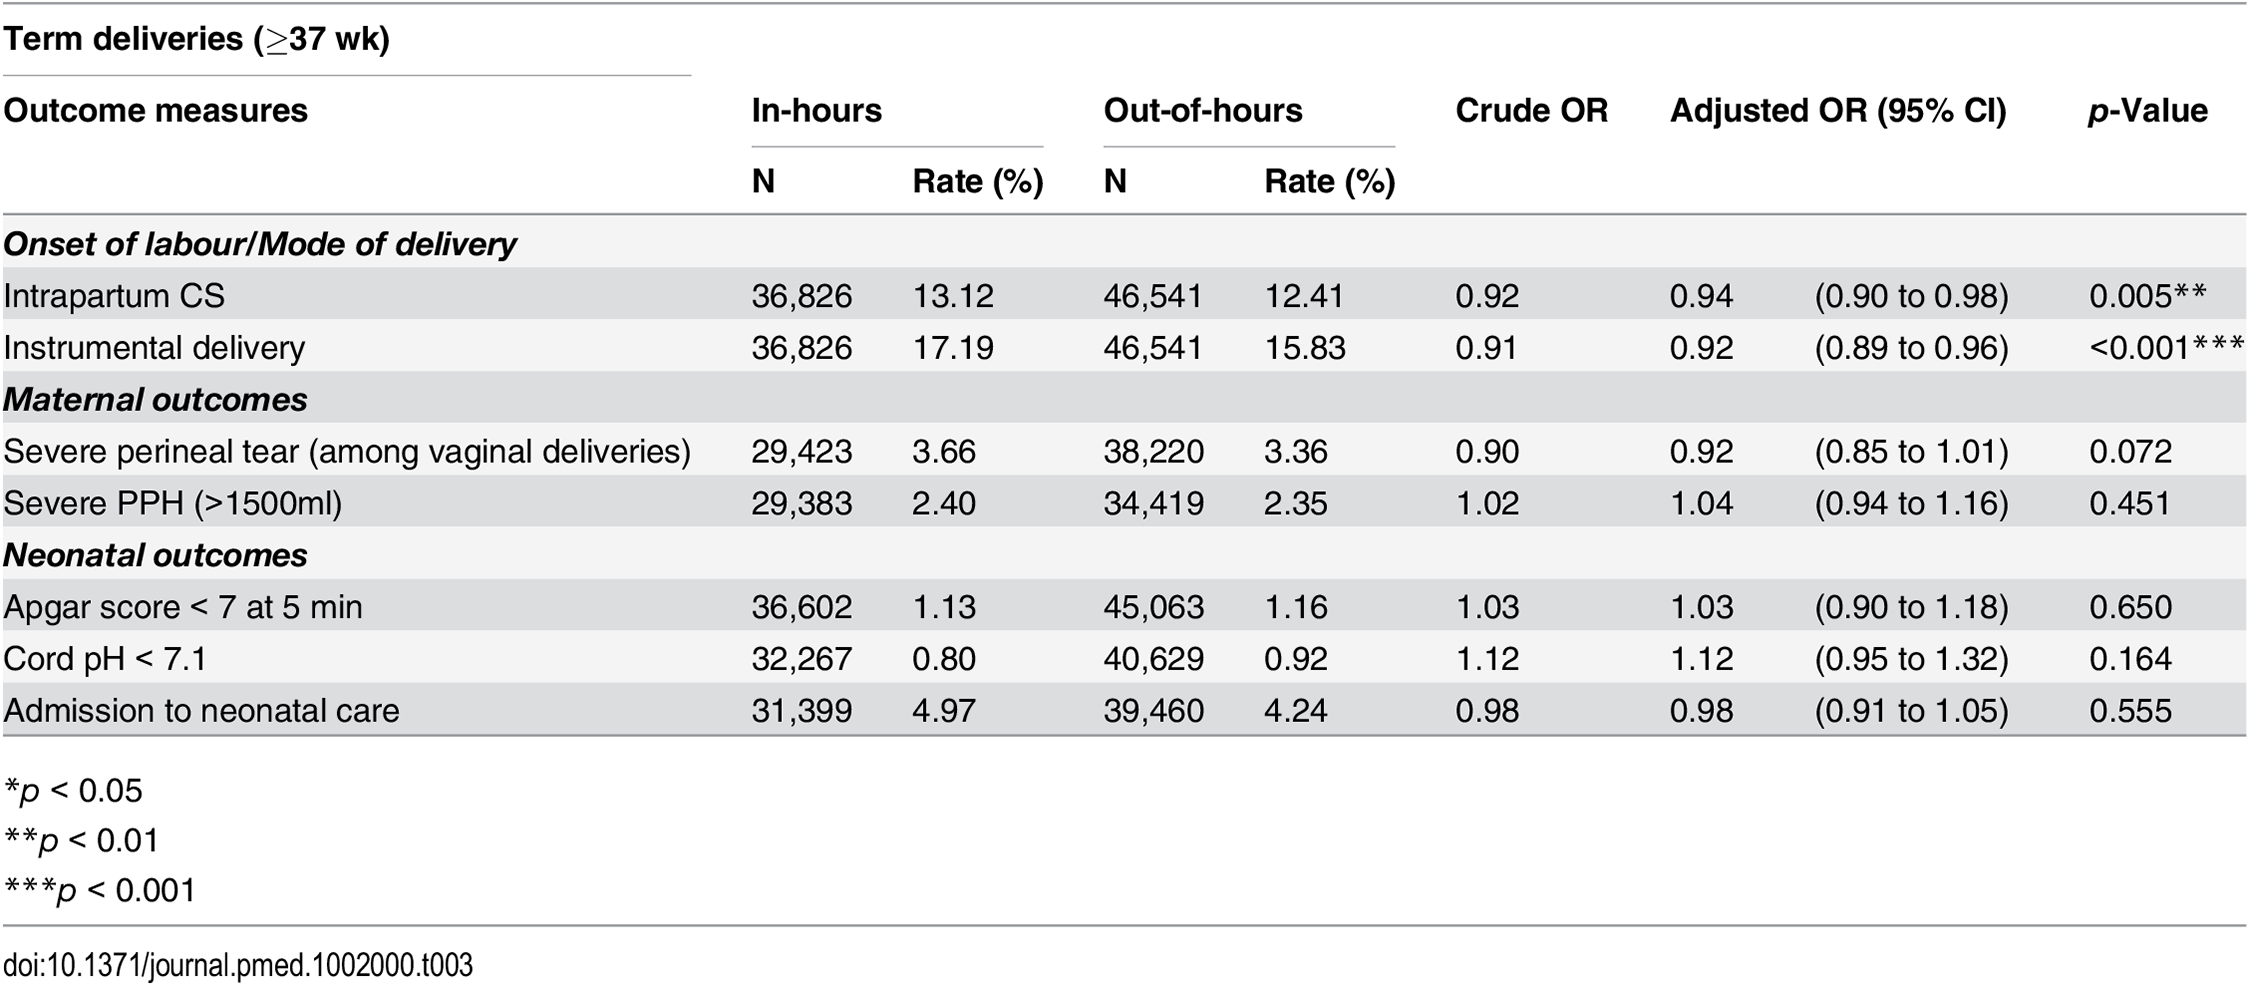 Crude and adjusted odds ratios for adverse perinatal outcomes among term deliveries, comparing in-hours and out-of-hours.